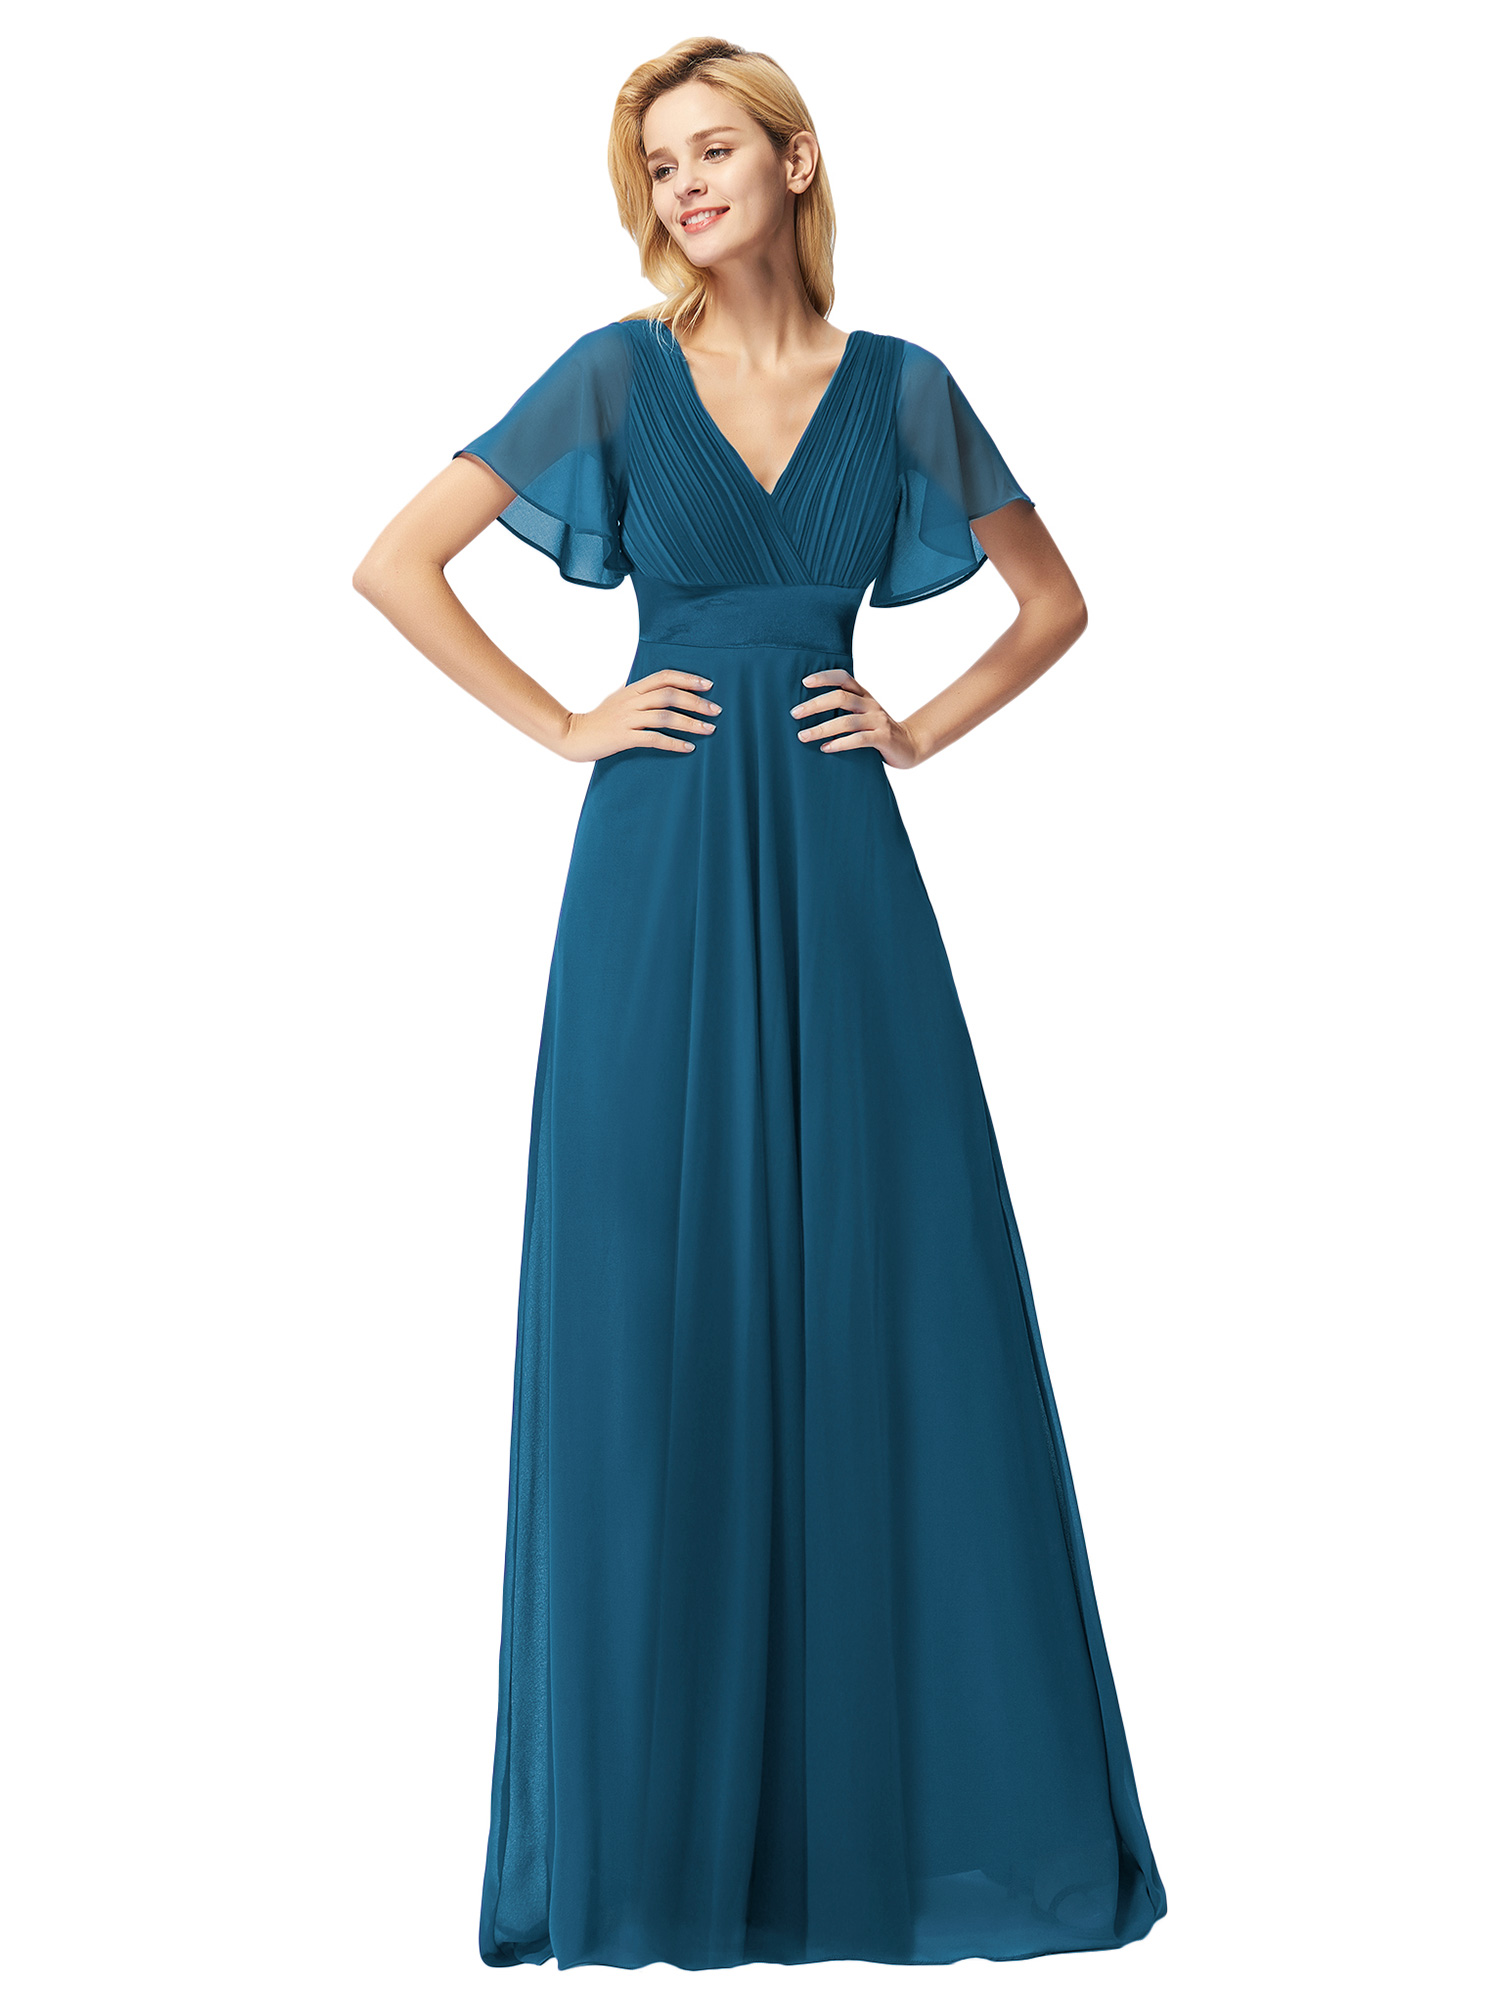 Ever-pretty-US-Short-Sleeve-Evening-Prom-Gown-Long-Formal-Cocktail-Party-Dresses thumbnail 9